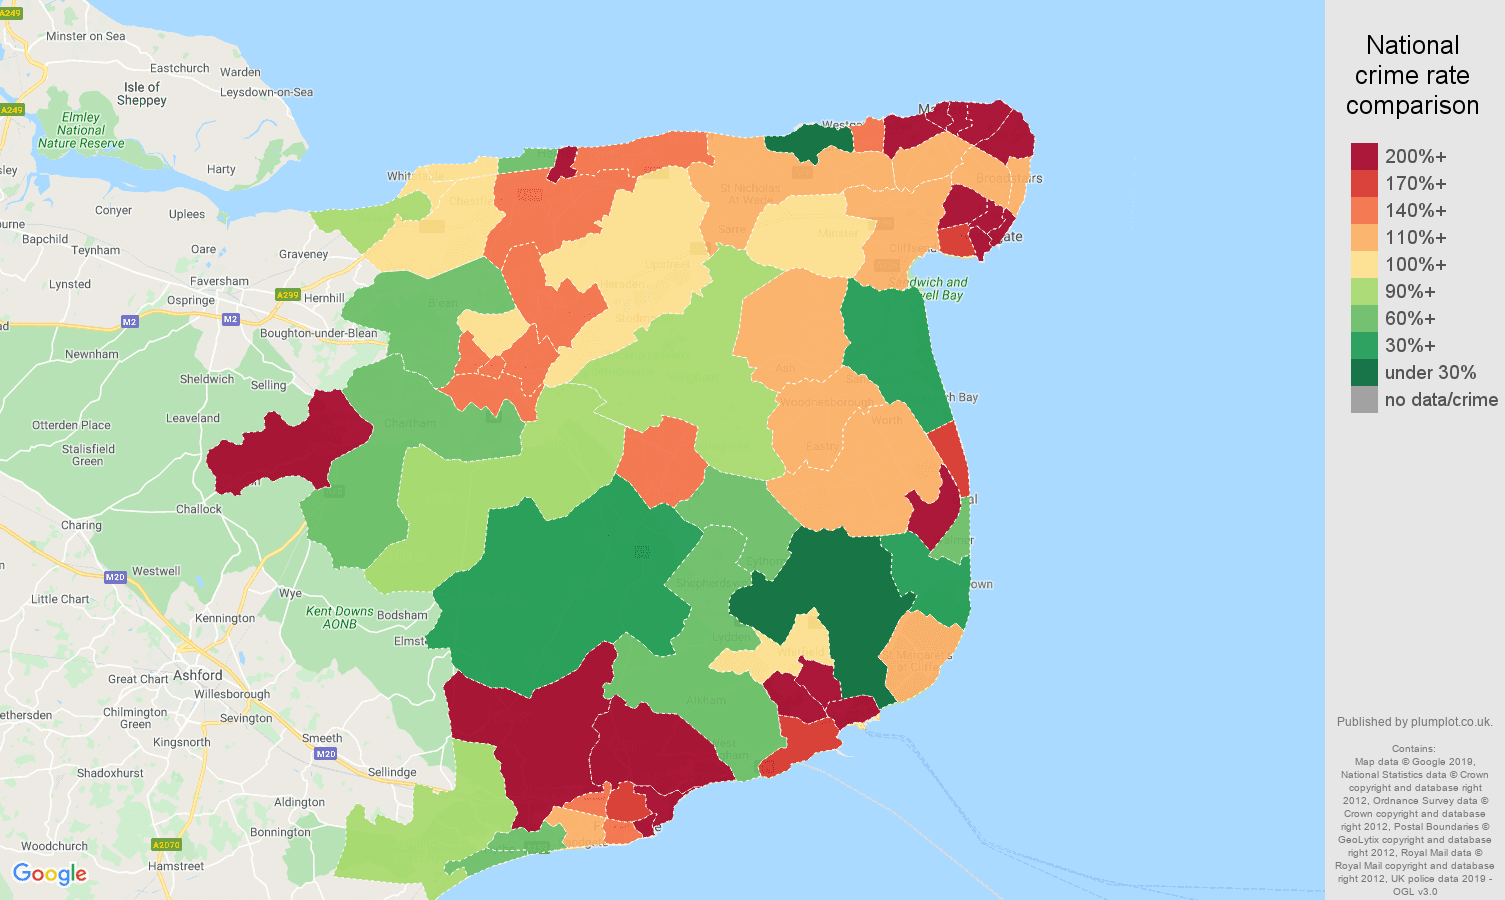 Canterbury other crime rate comparison map